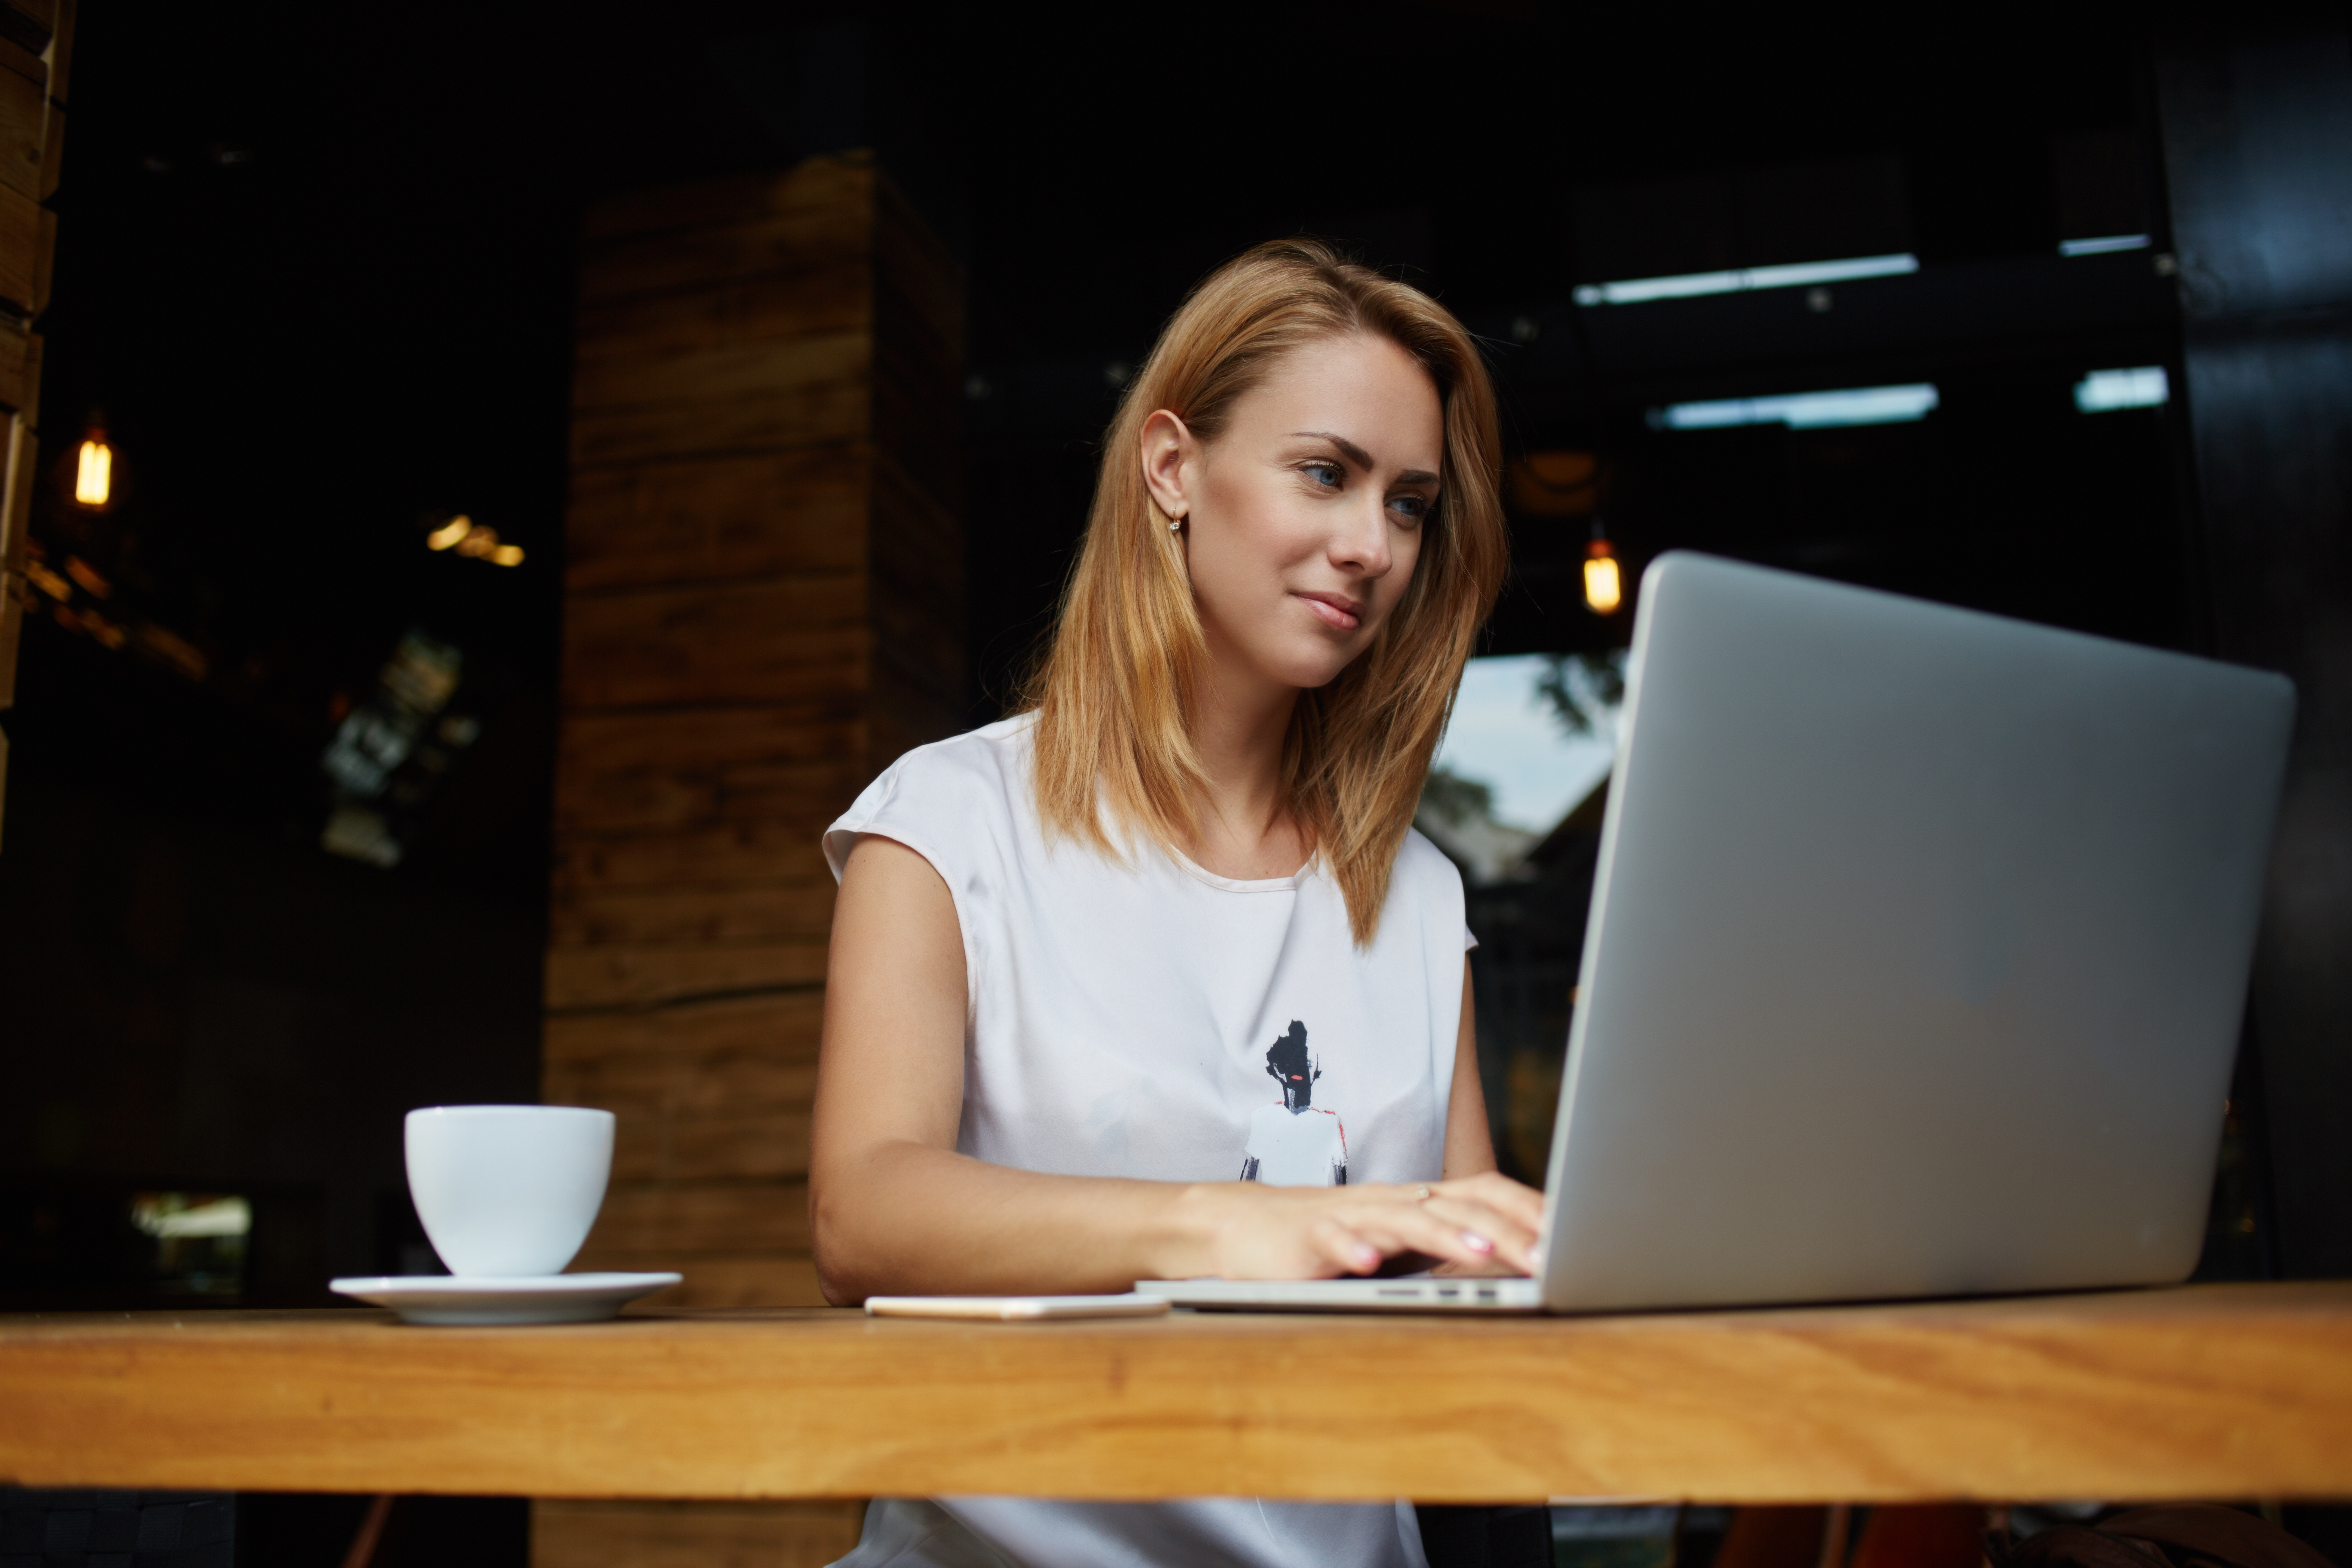 female-investor-laptop-coffee-shop.jpg